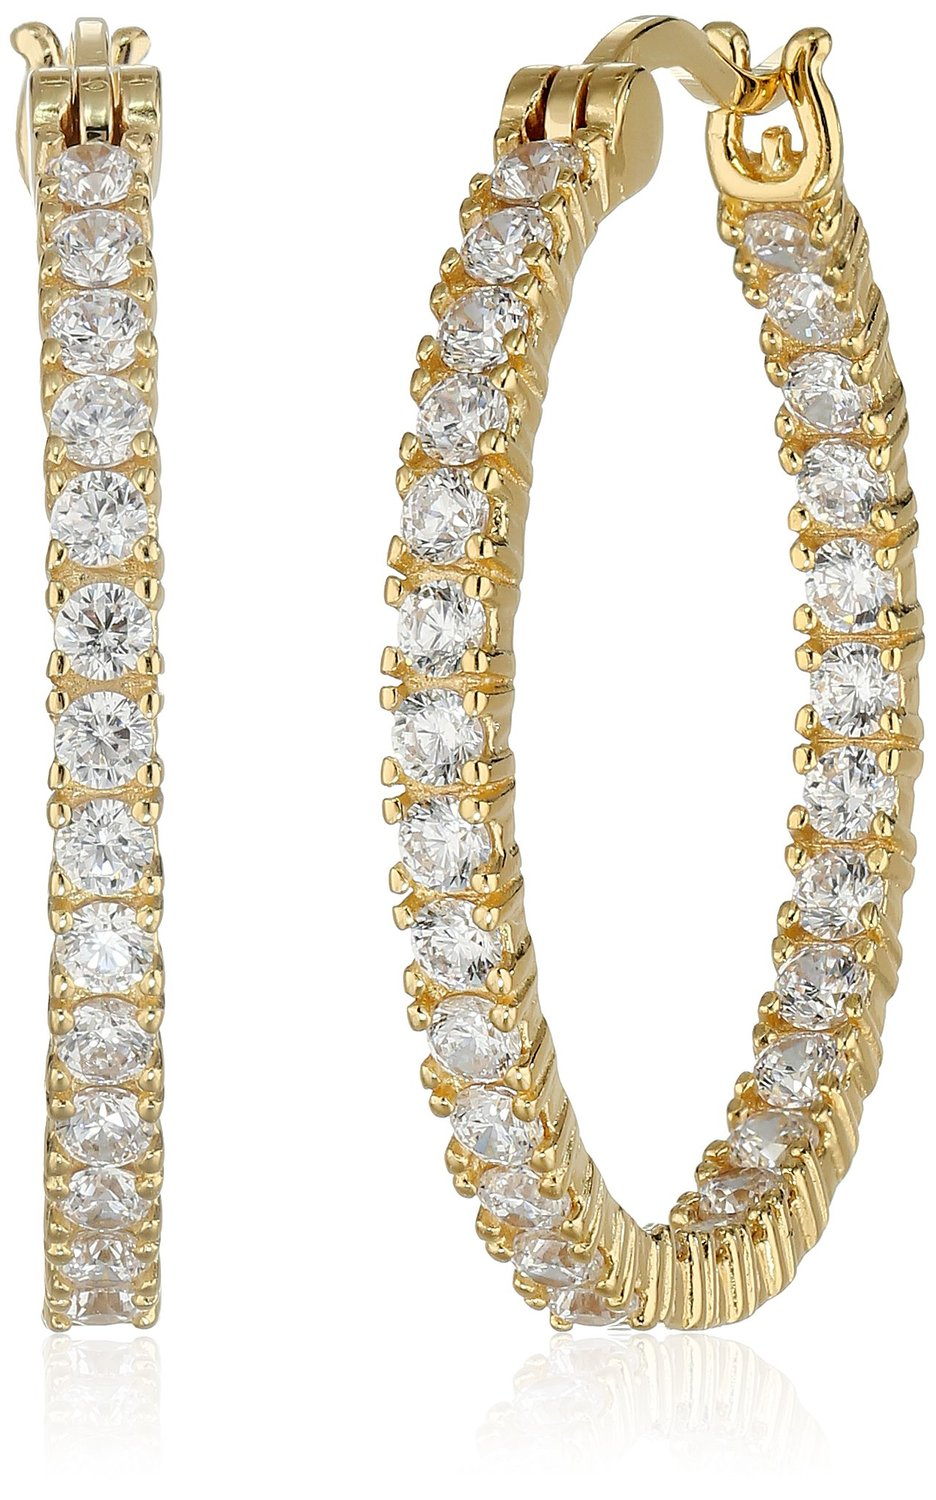 "Amazon.com: 18k yellow gold plated sterling silver cubic zirconia 2mm hoop earrings, 1"": jewelry"